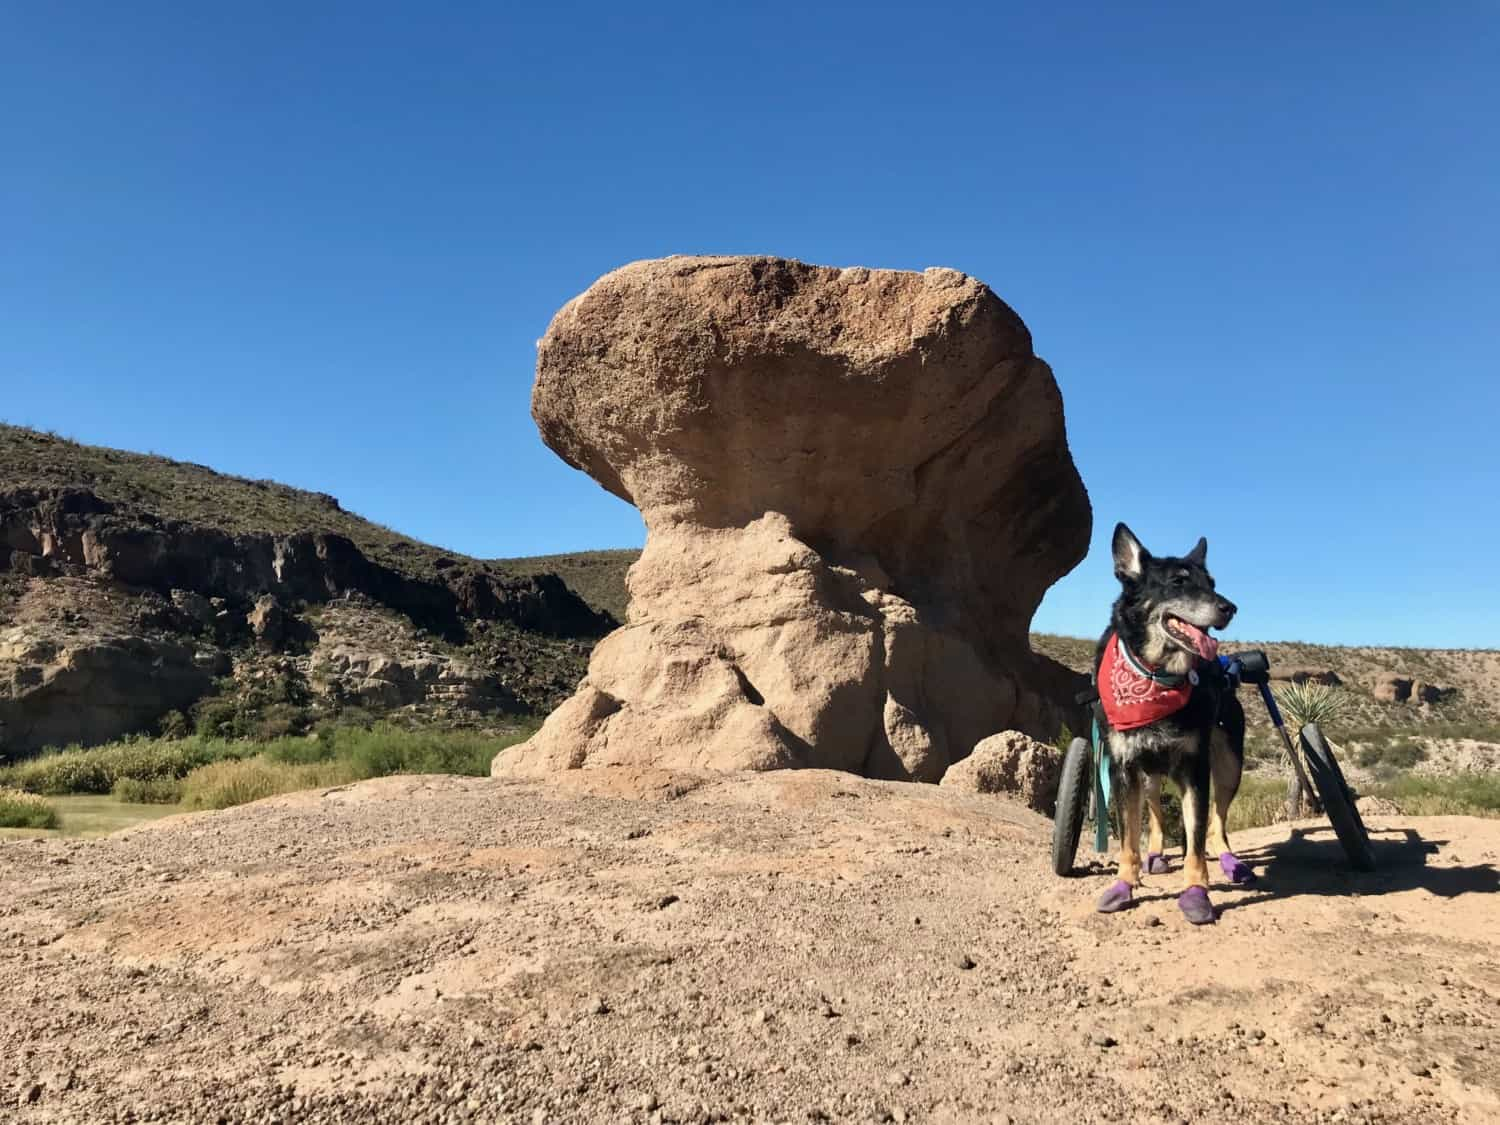 Dog on the pet friendly Hoodoos Trail in Big Bend Ranch State Park, Texas